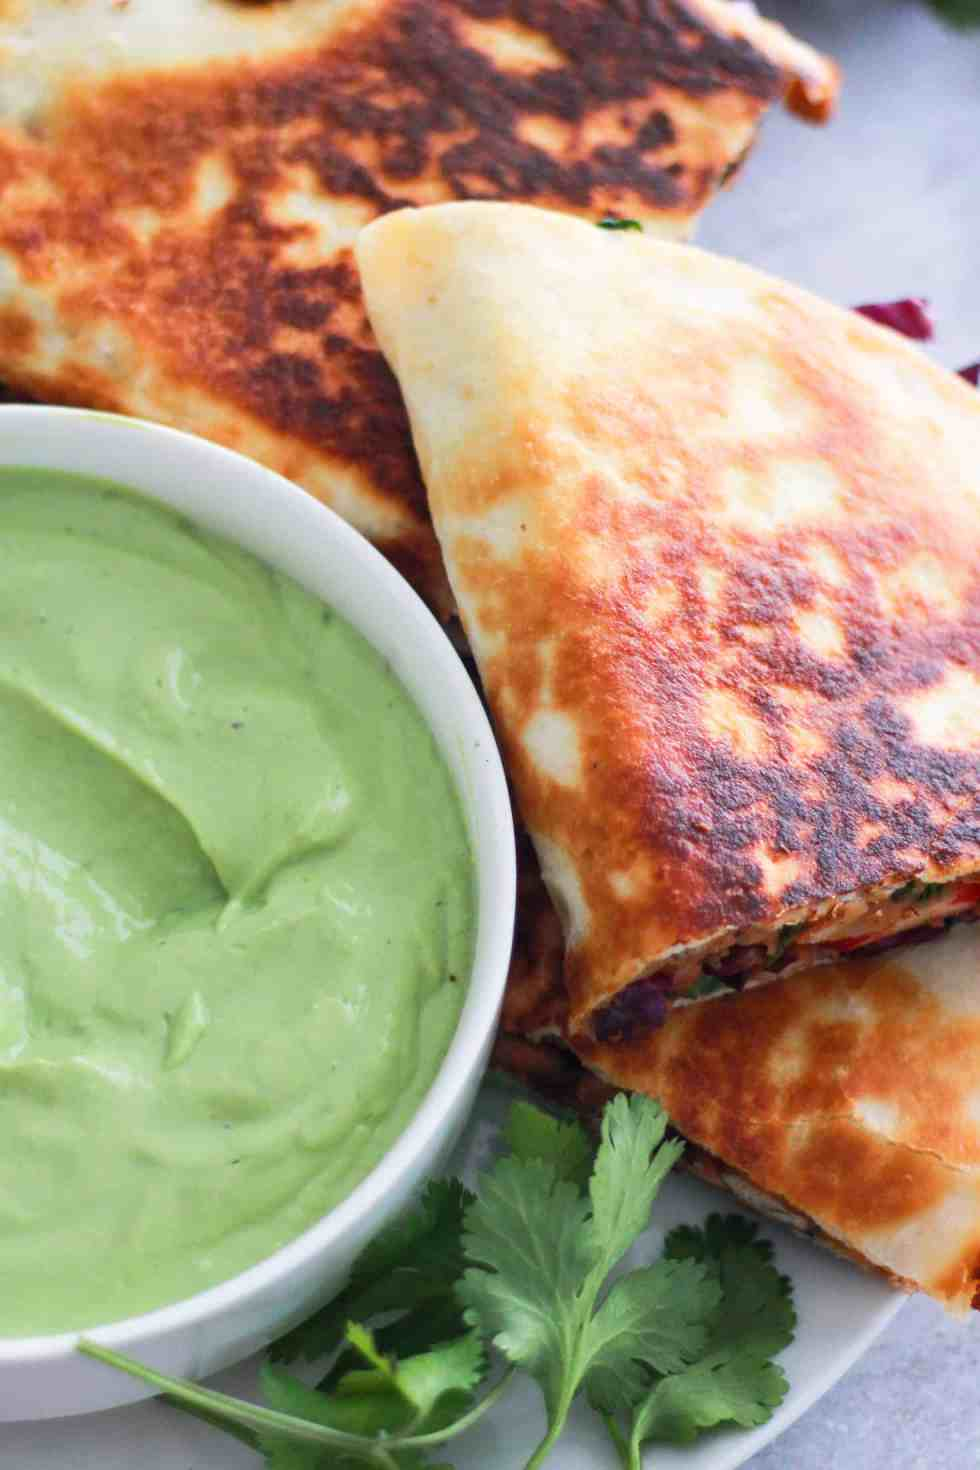 Bean quesadilla on a plate with avocado dipping sauce.